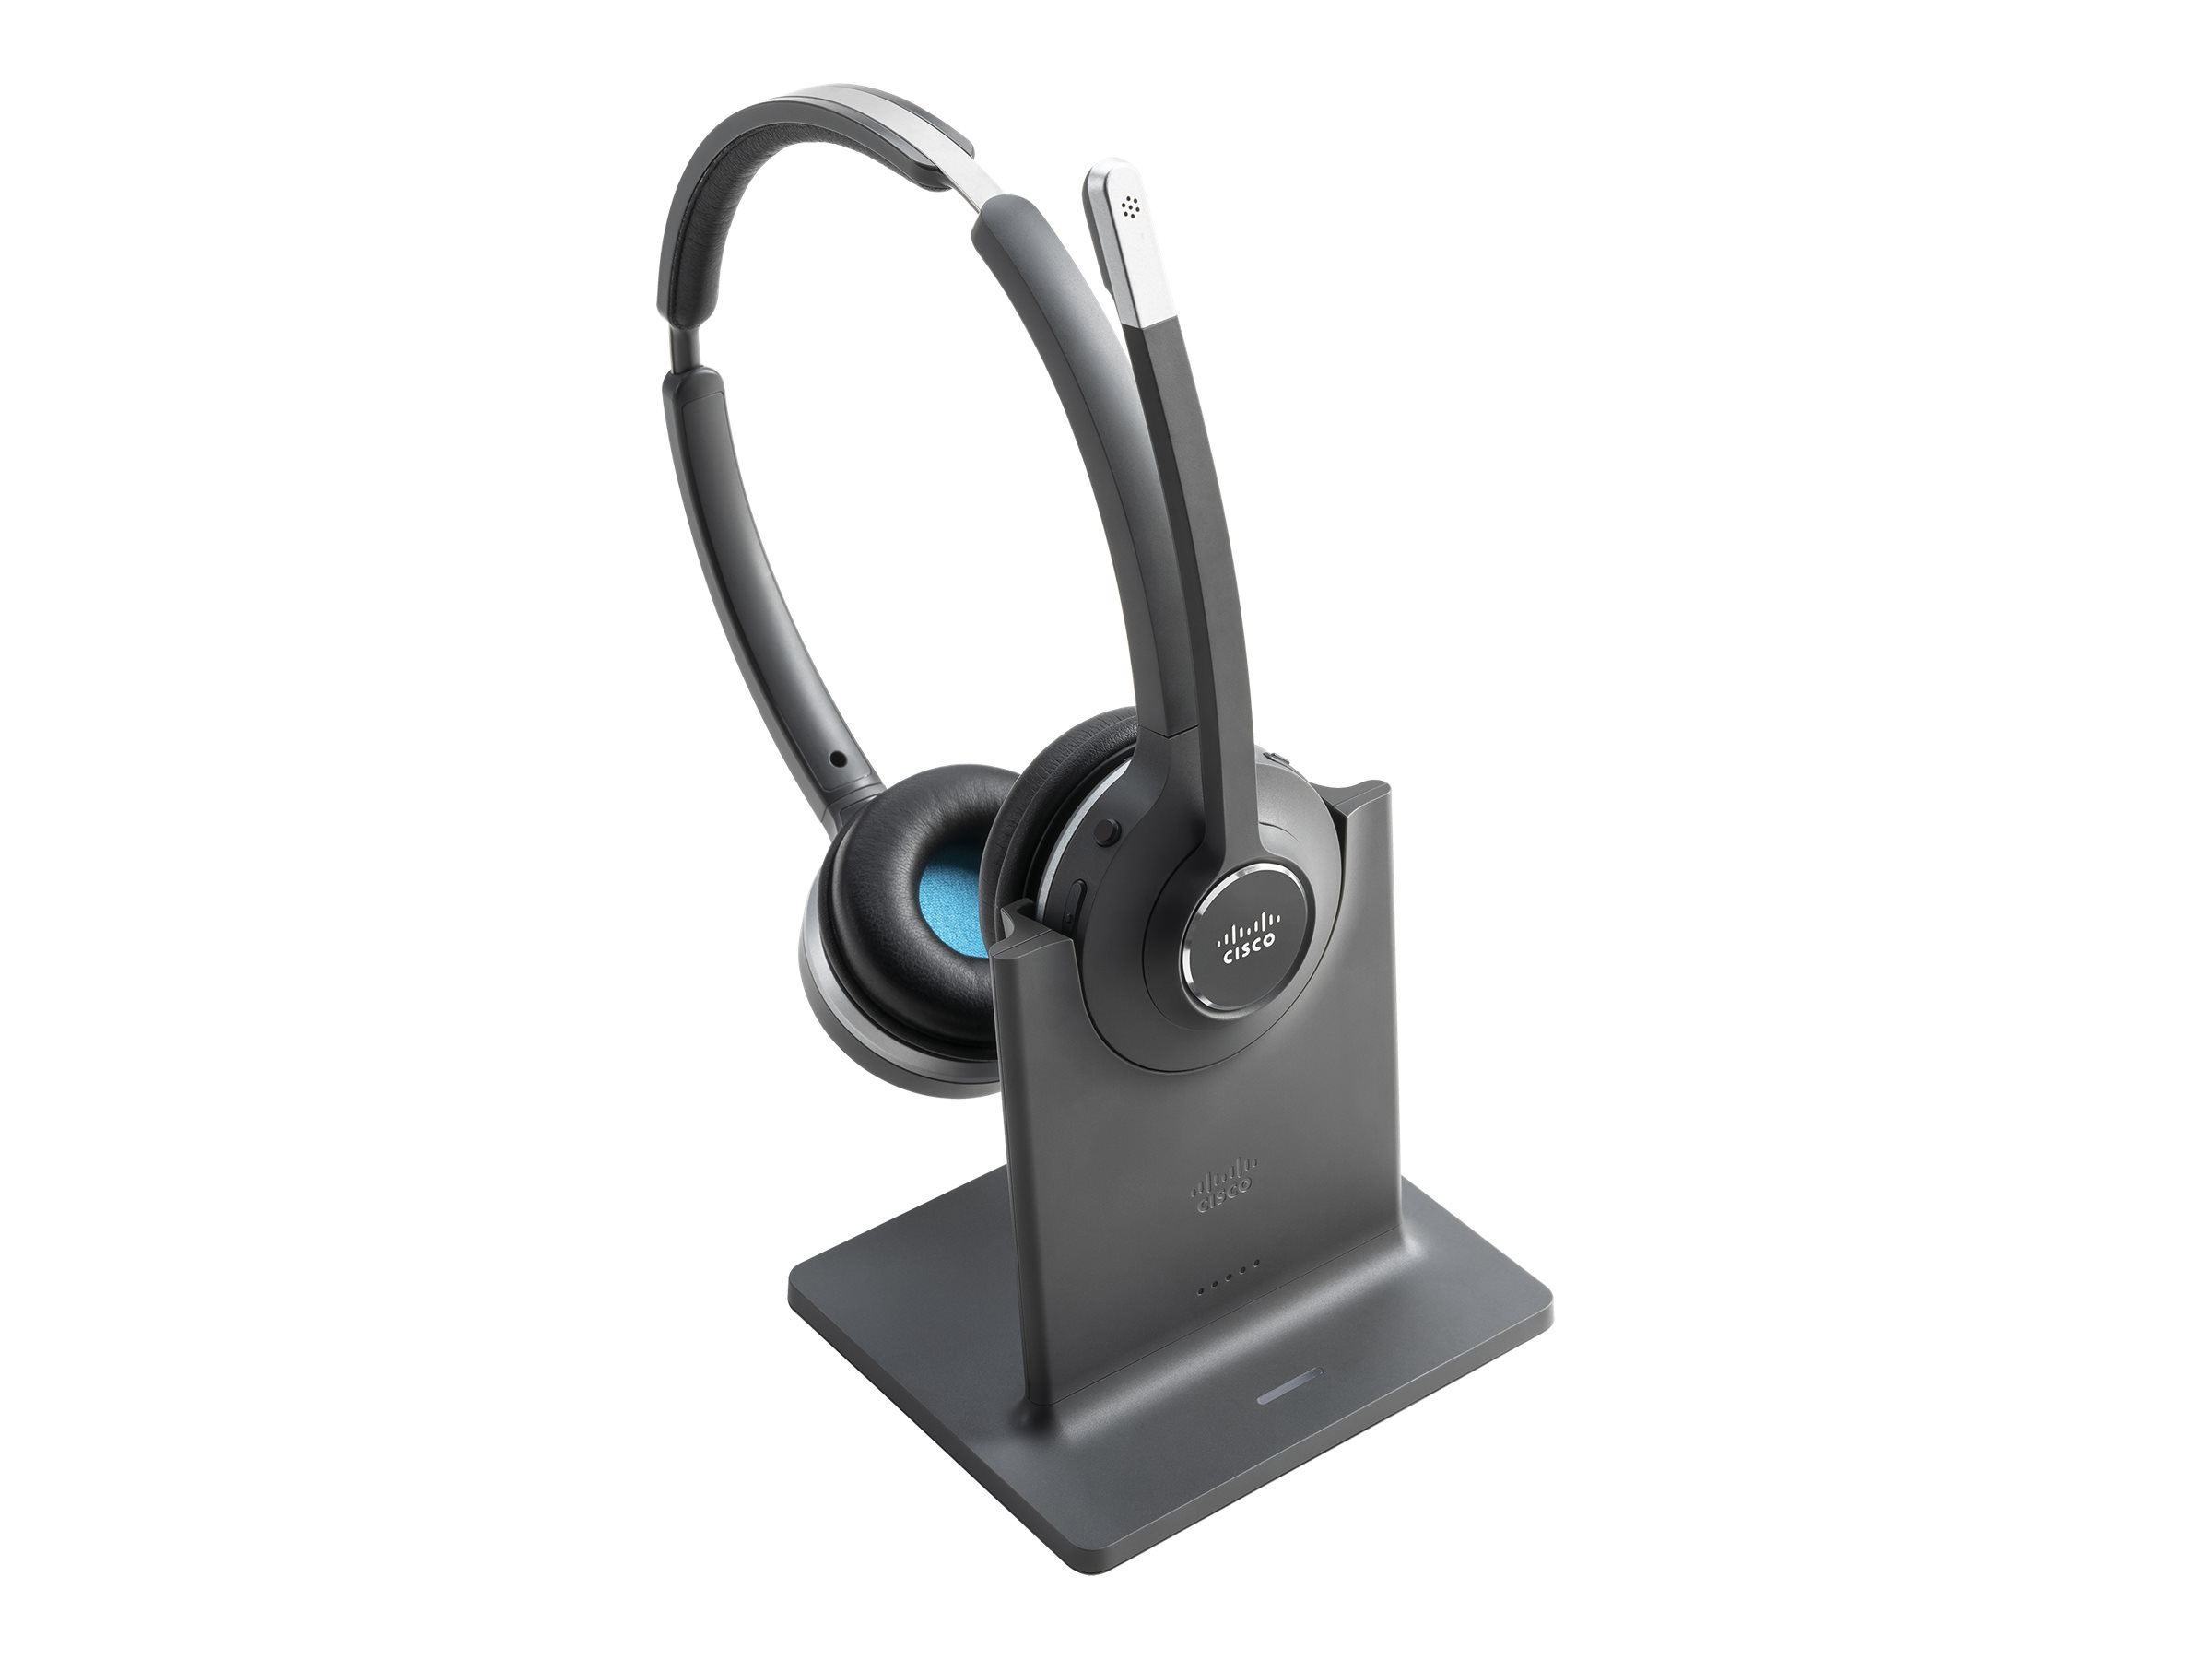 Cisco 562 Wireless Dual - headset - with Standard Base Station